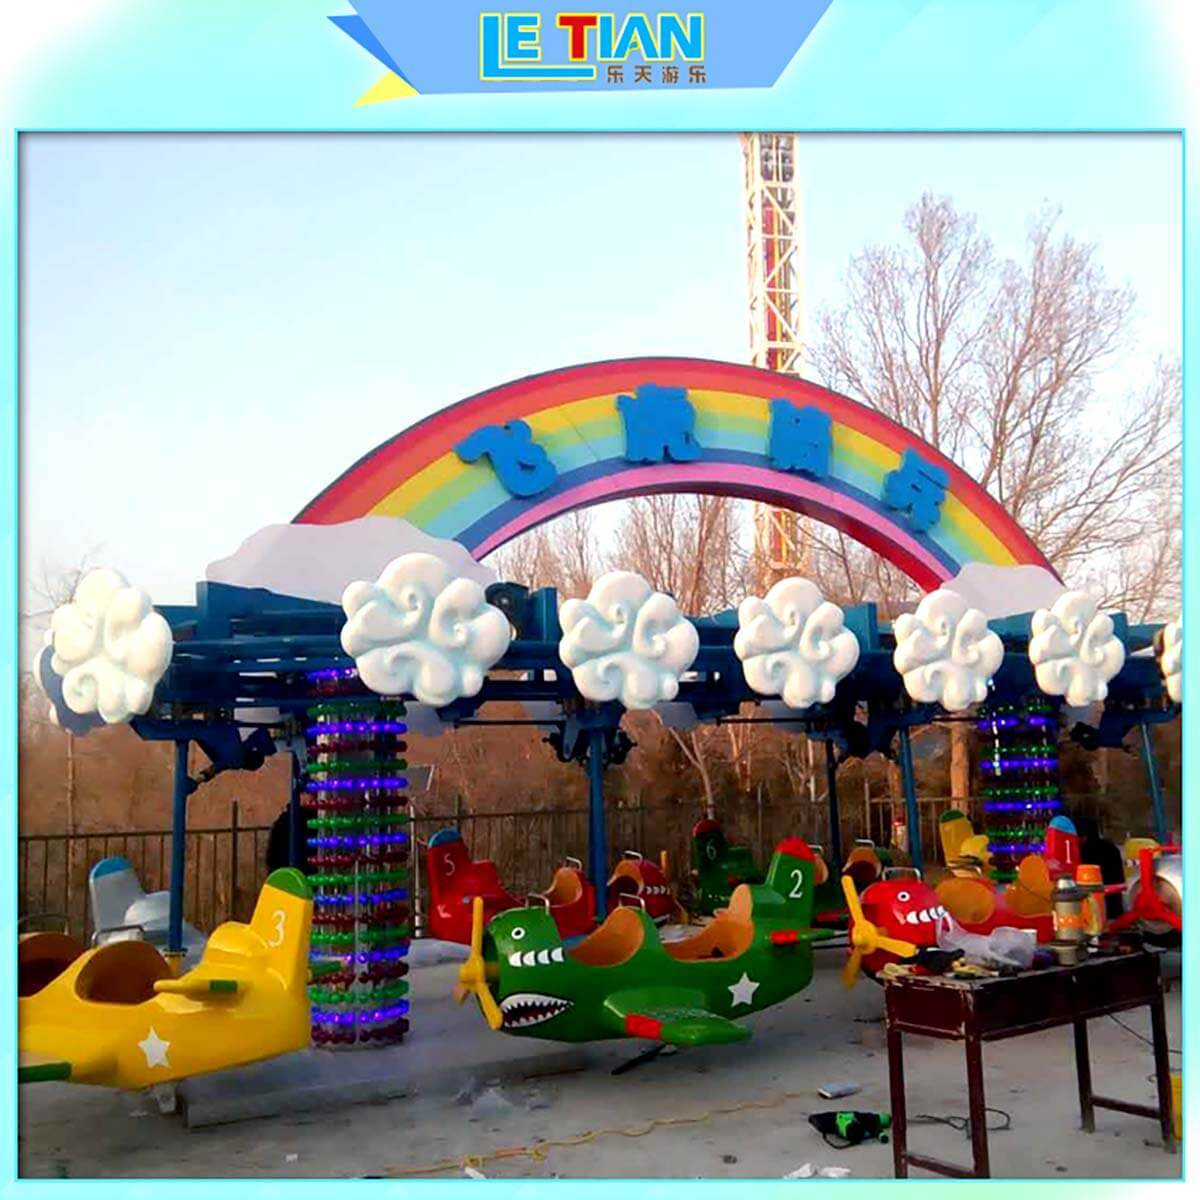 LETIAN outdoor pirate boat ride student mall-3